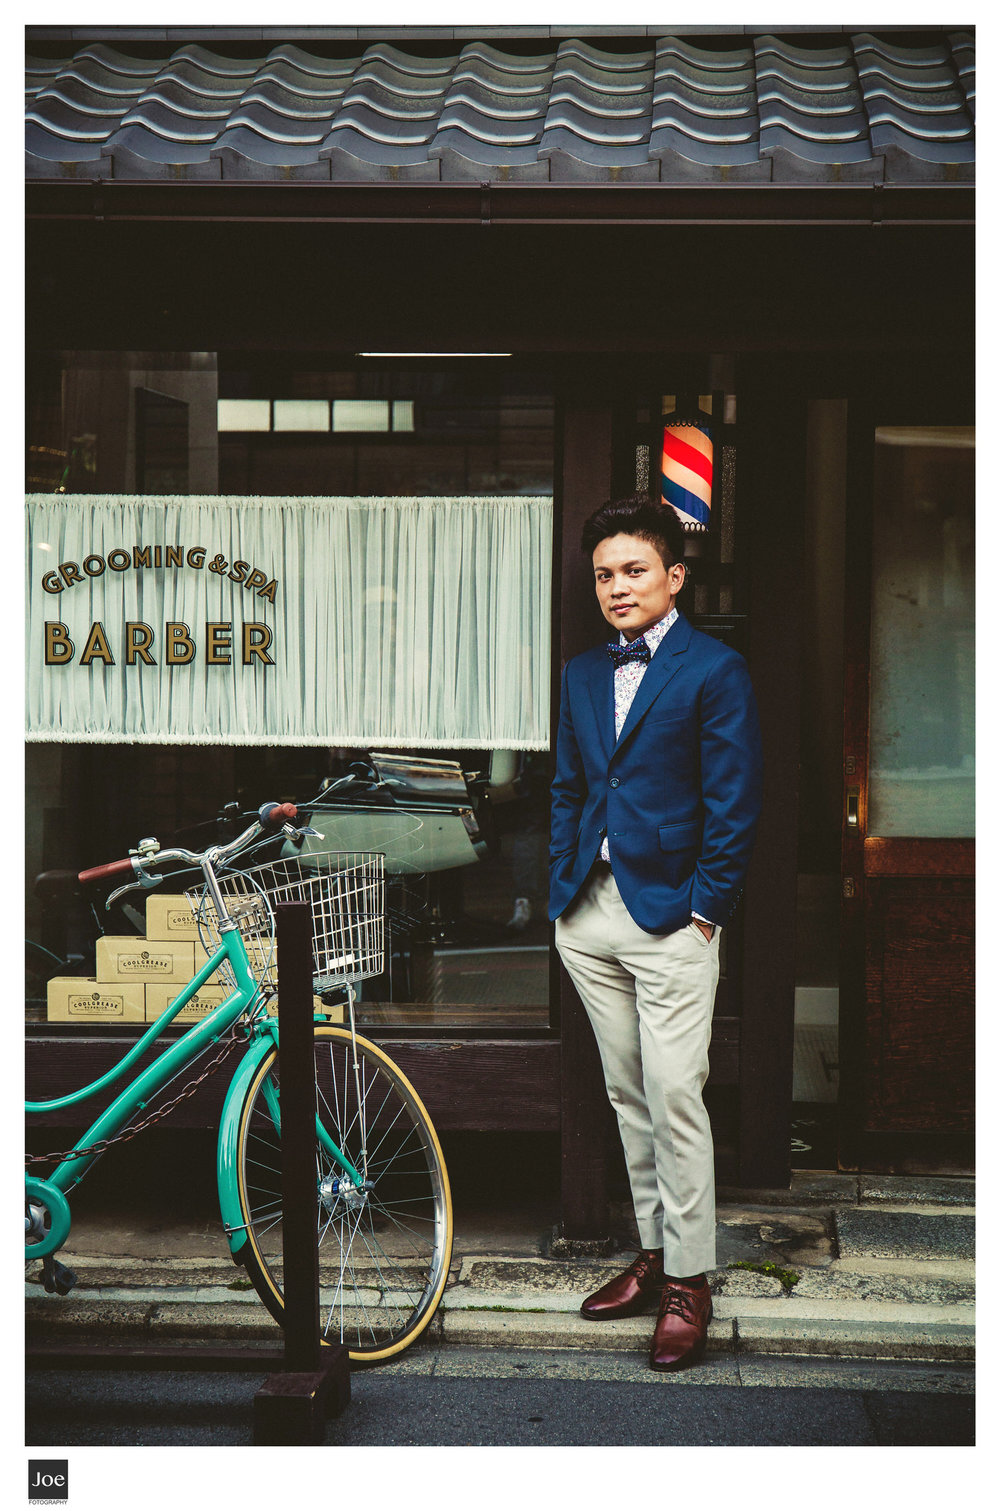 100-barber-higuchi-grooming-and-spa-kyoto-pre-wedding-angela-danny-joe-fotography.jpg